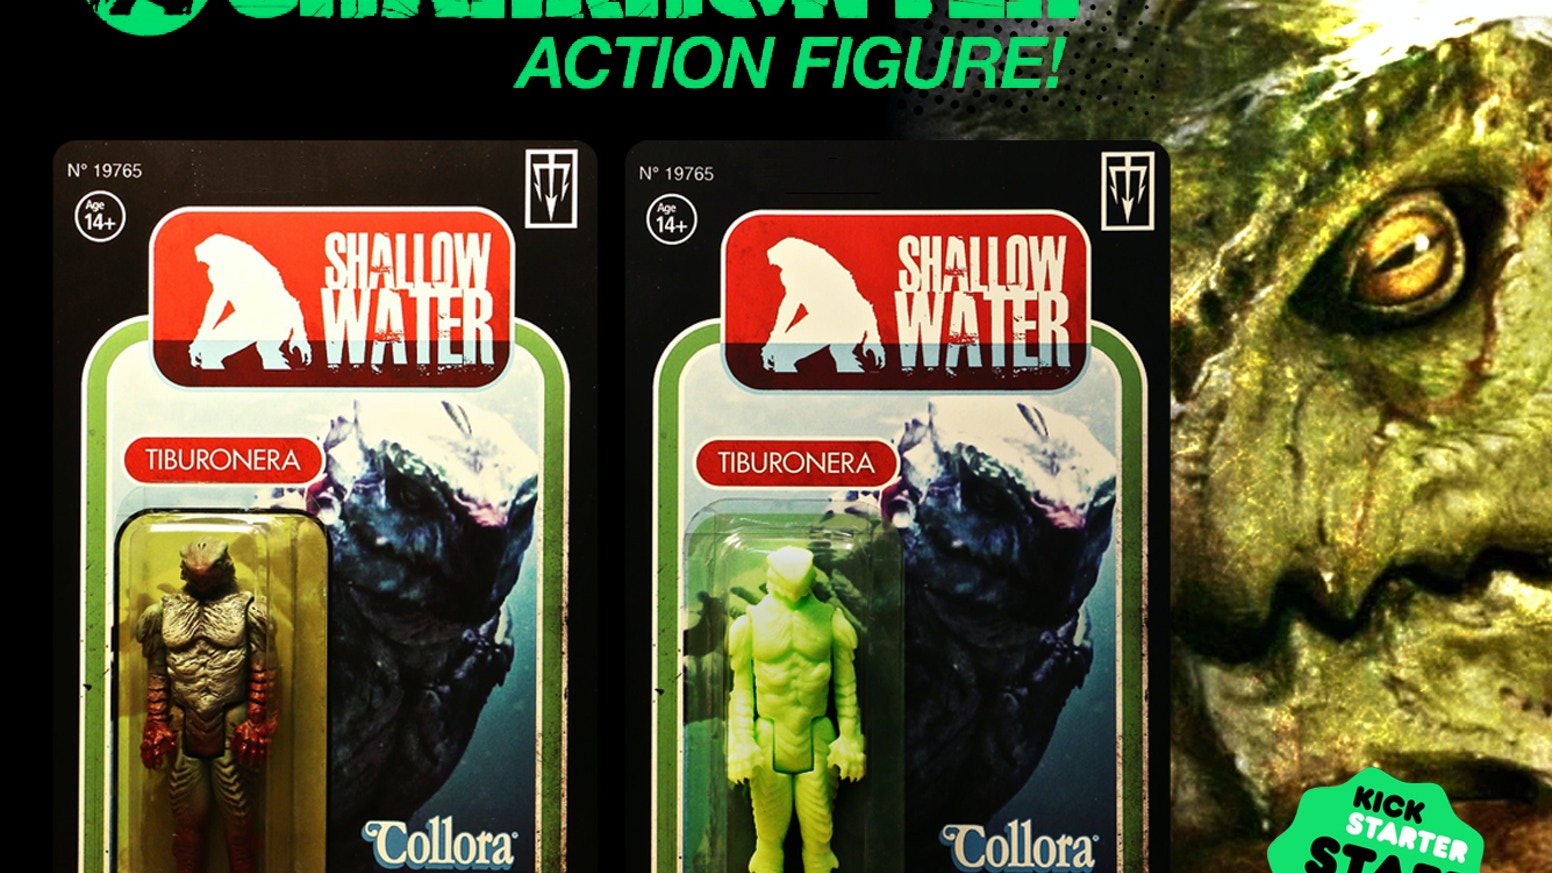 """A retro 3 3/4"""", Kenner style action figure designed and sculpted by Hollywood creature creator and filmmaker, Sandy Collora."""